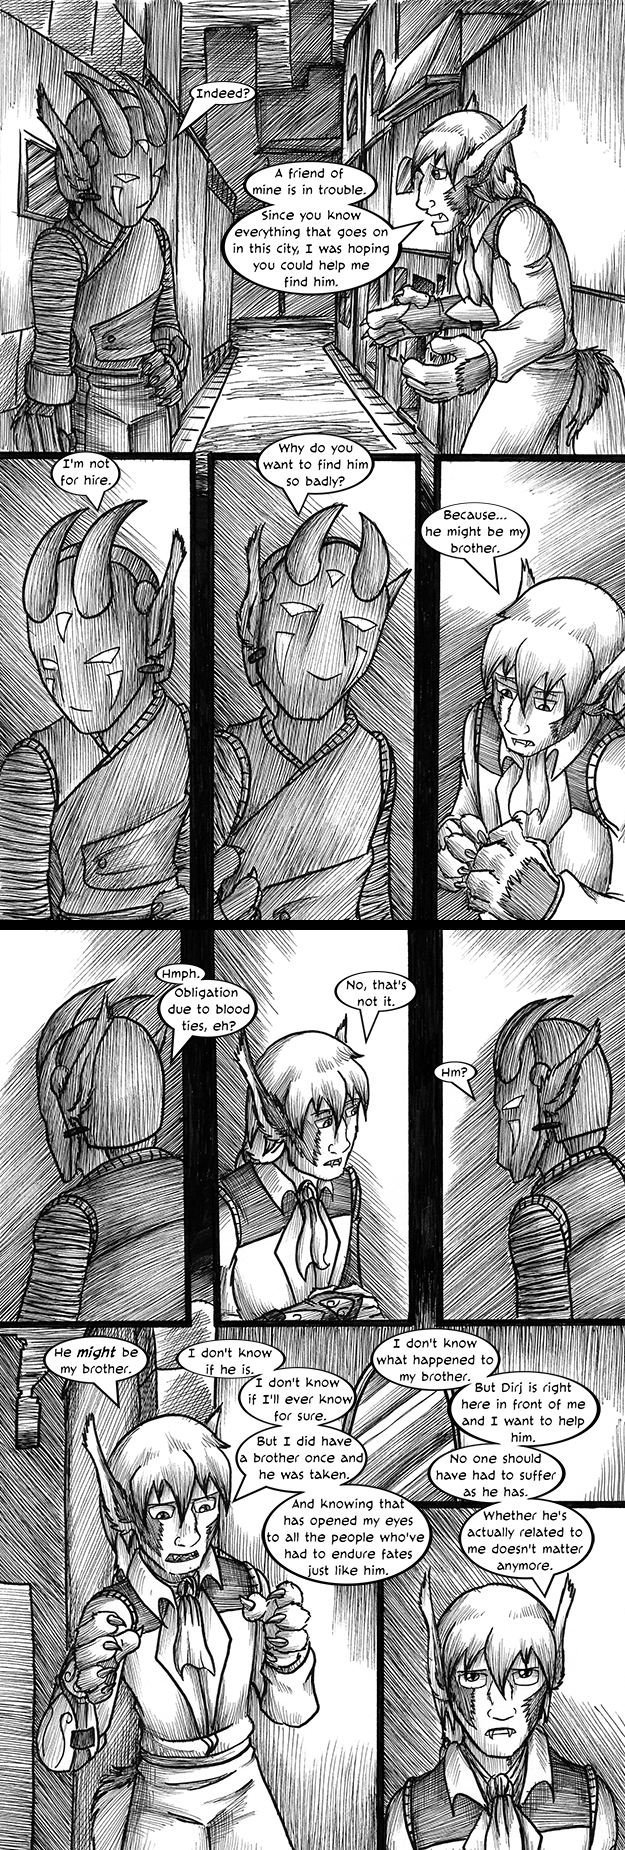 12 Page 09/10